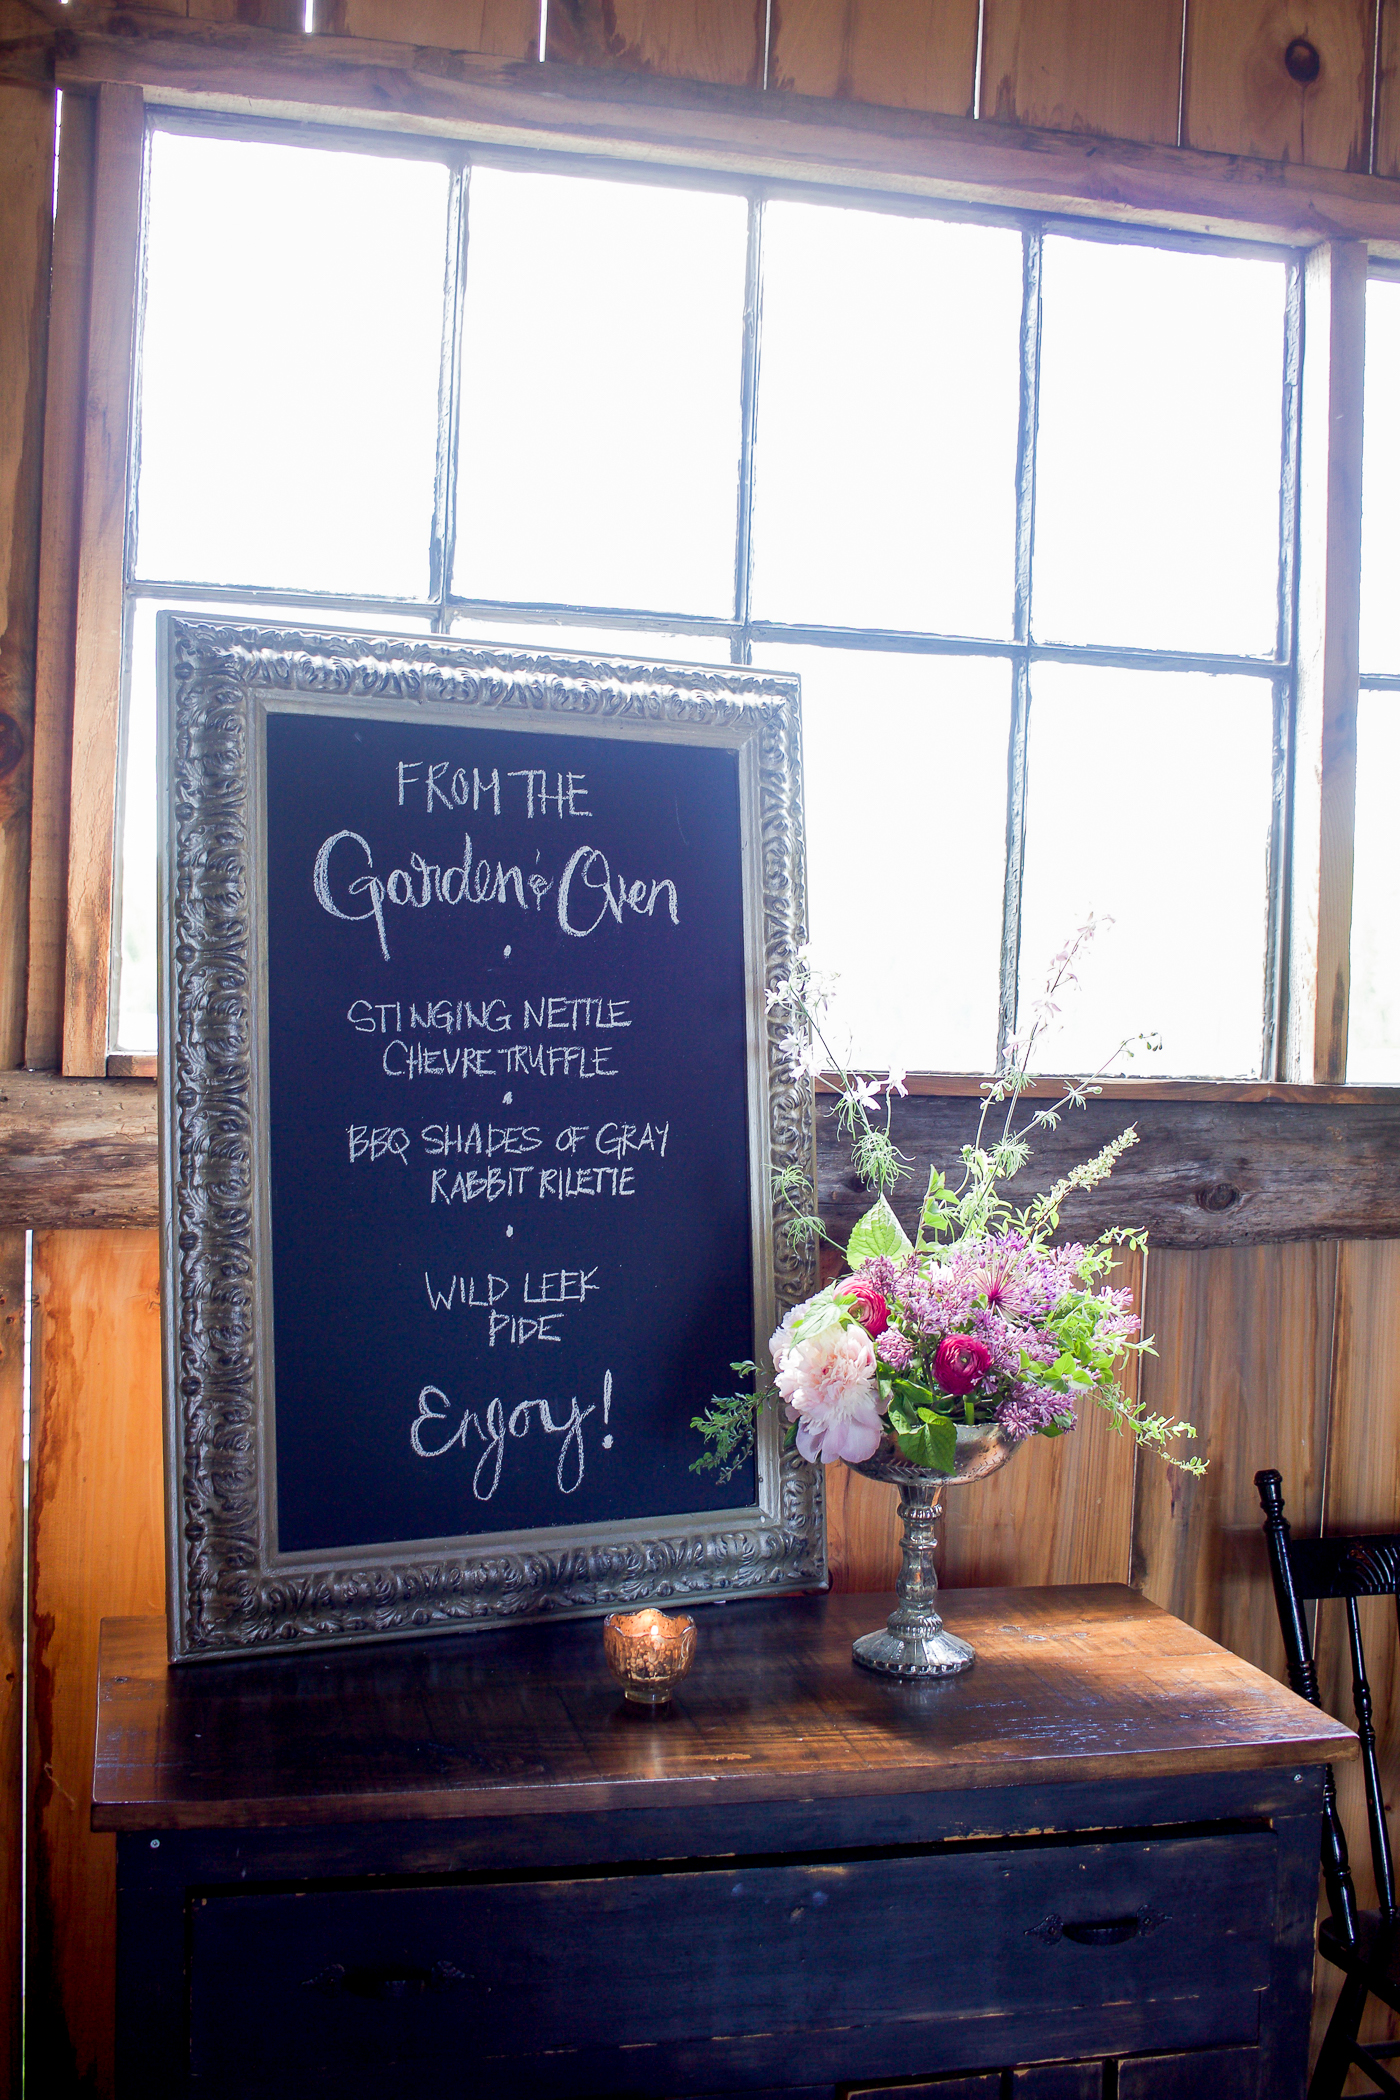 the menu for lunch at south pond farms, was a hand written chalkboard design